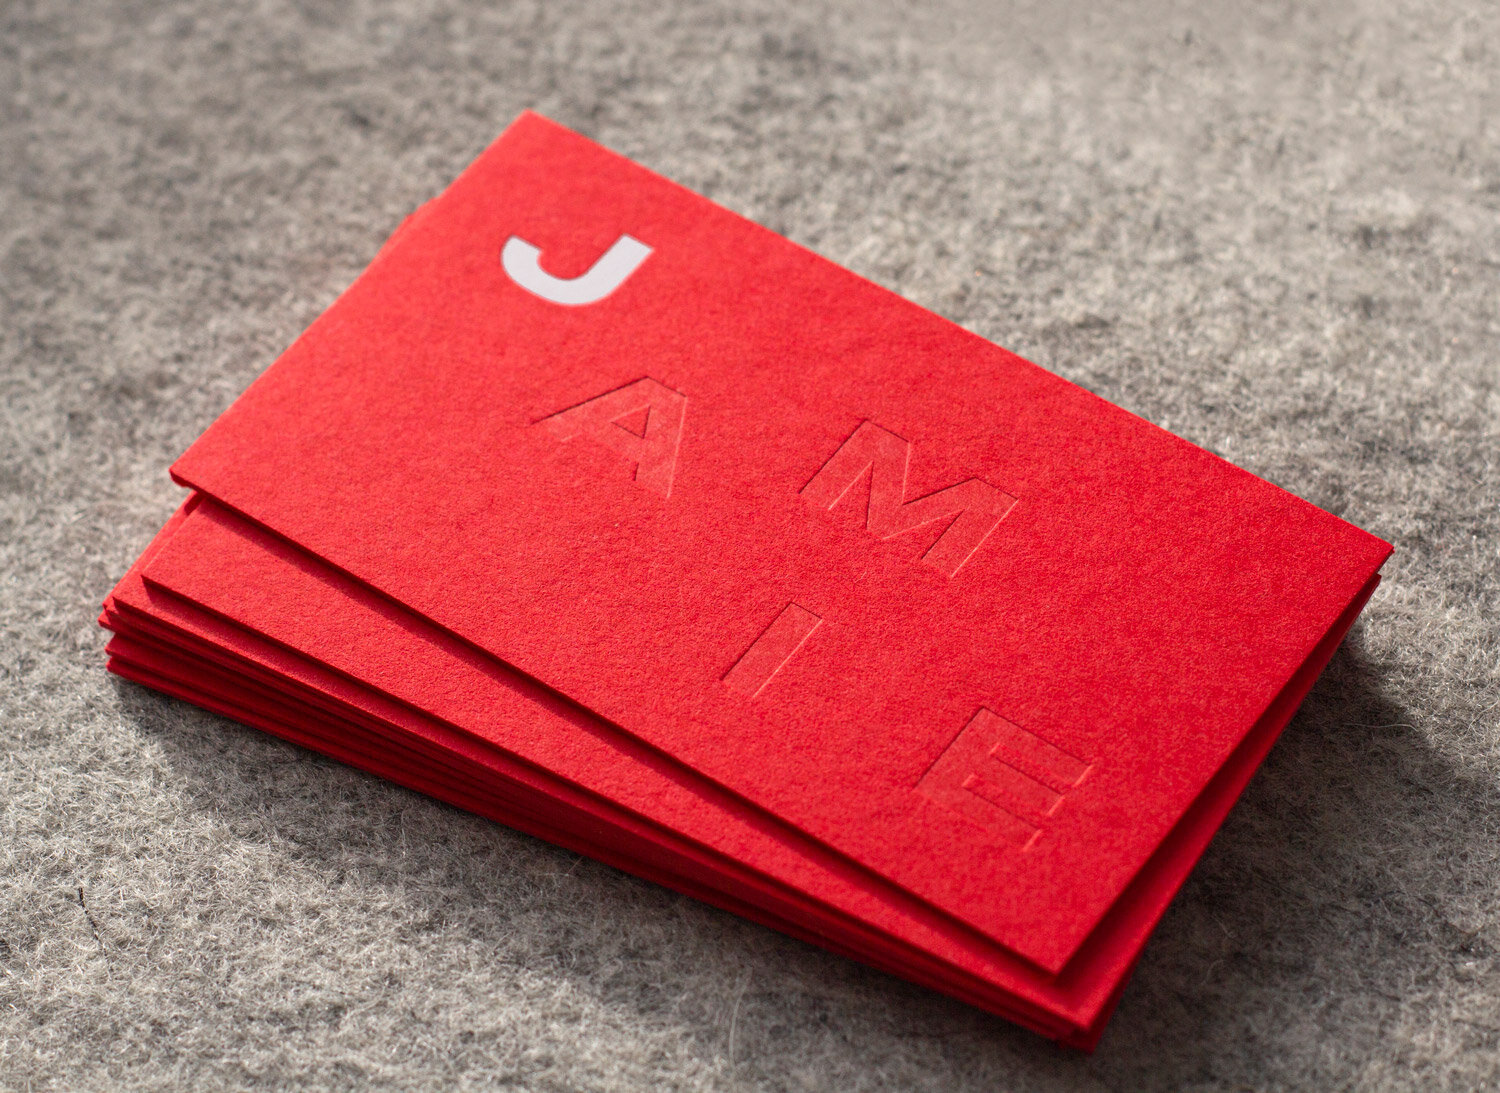 Jamie Webster Business Cards - Freelance Digital Designer based in Leeds